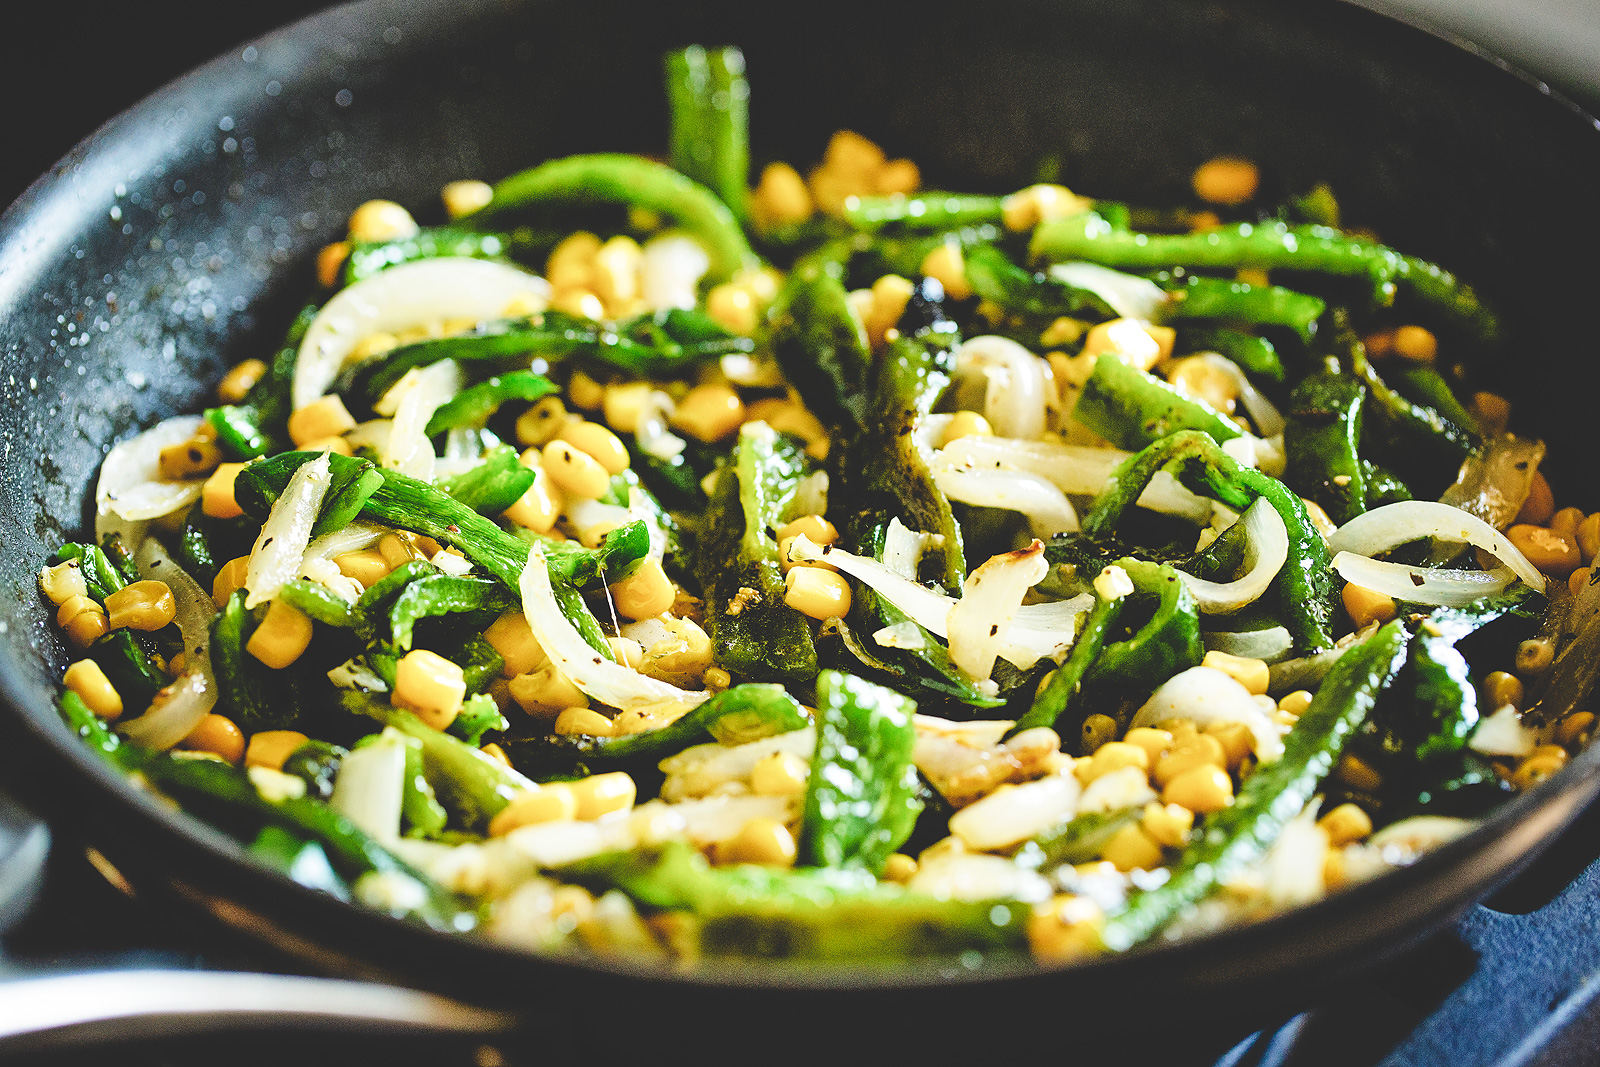 Skillet on the stove with veg and spices.